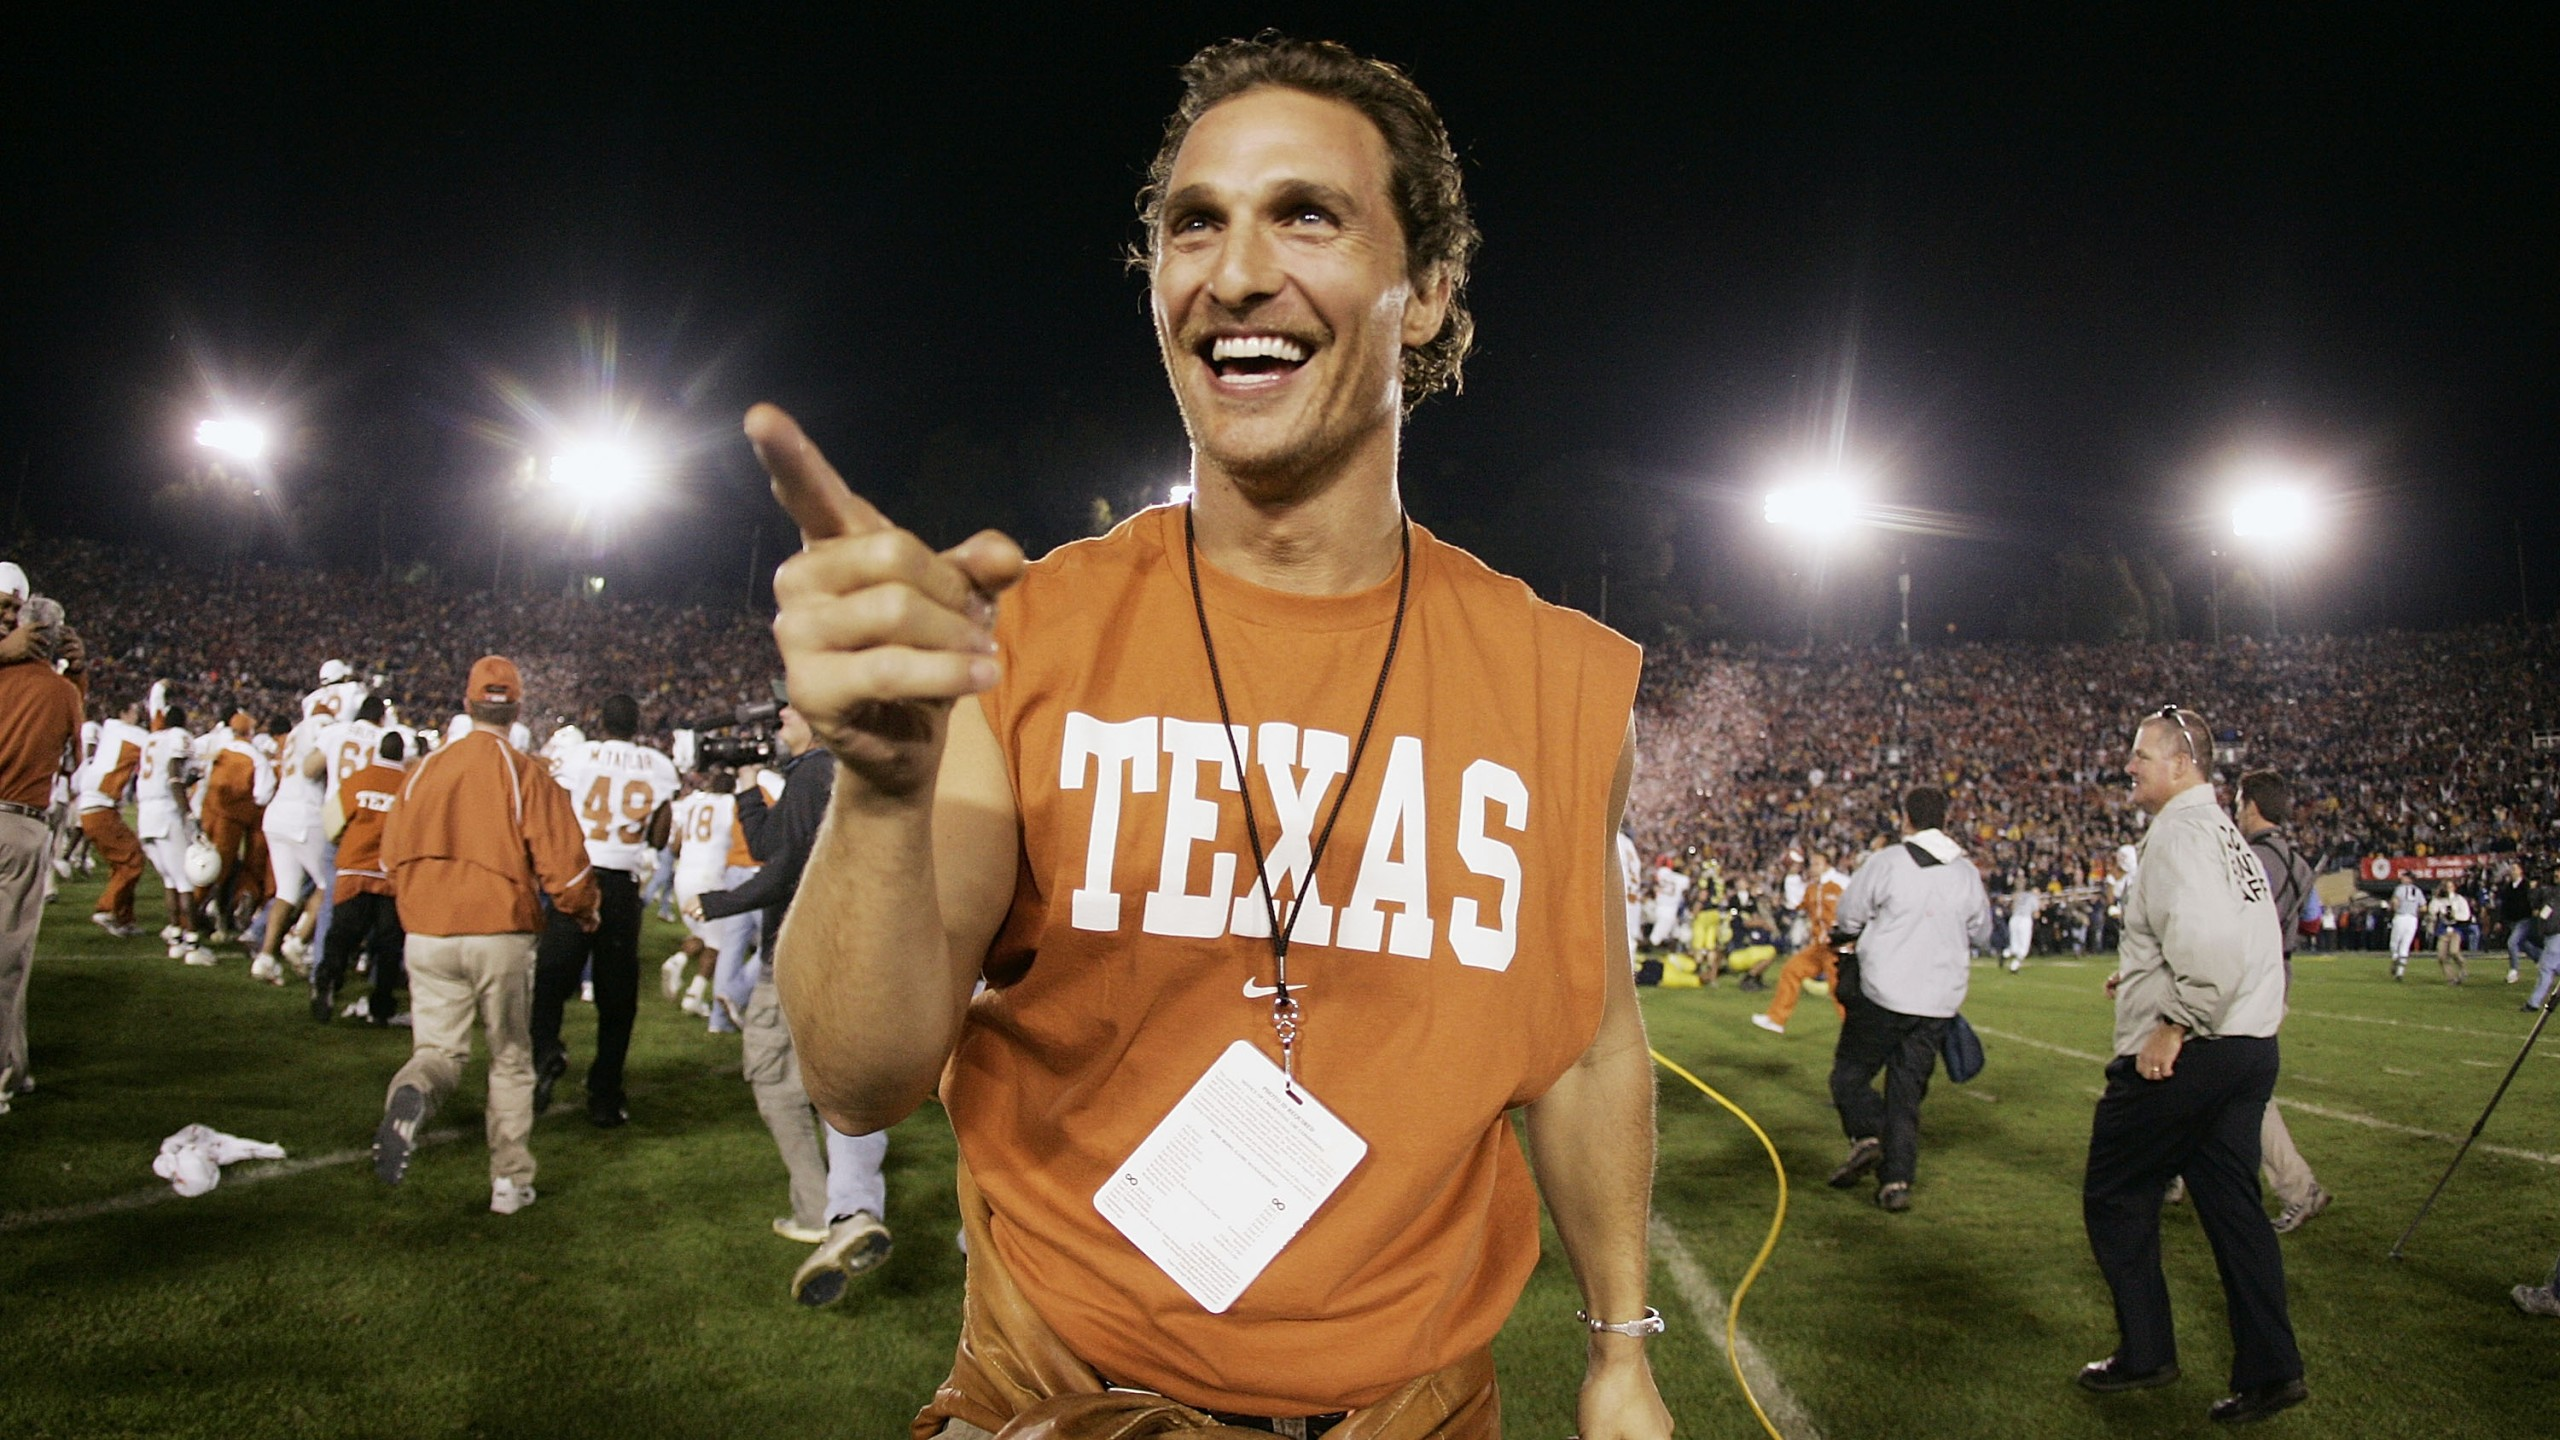 Actor Matthew McConaughey celebrates on the field after the Texas Longhorns defeated the Michigan Wolverines in the 91st Rose Bowl Game at the Rose Bowl on January 1, 2005 in Pasadena, California. (Credit: Donald Miralle/Getty Images)